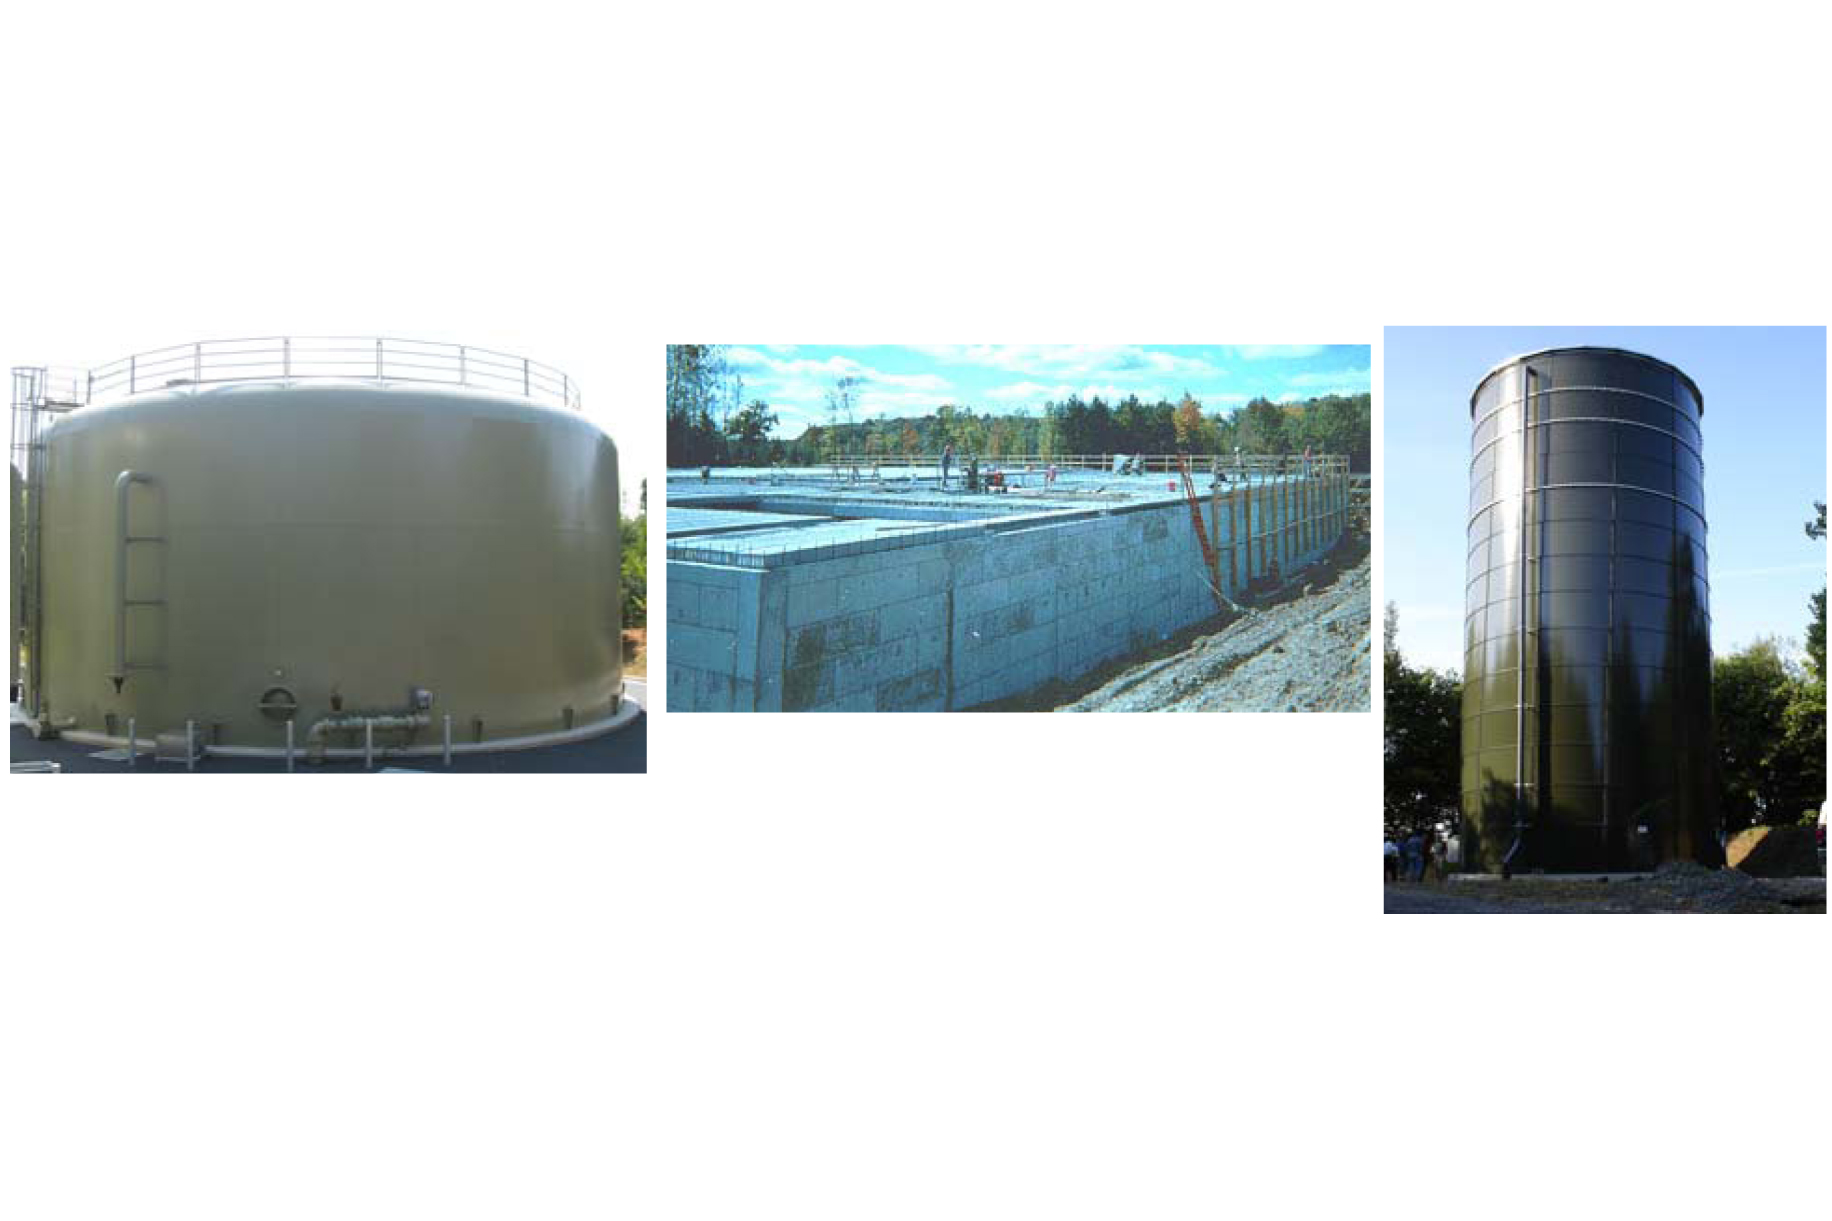 sc 1 st  Water Online & The Science Of Mixing And Improving Water Quality In Water Storage Tanks